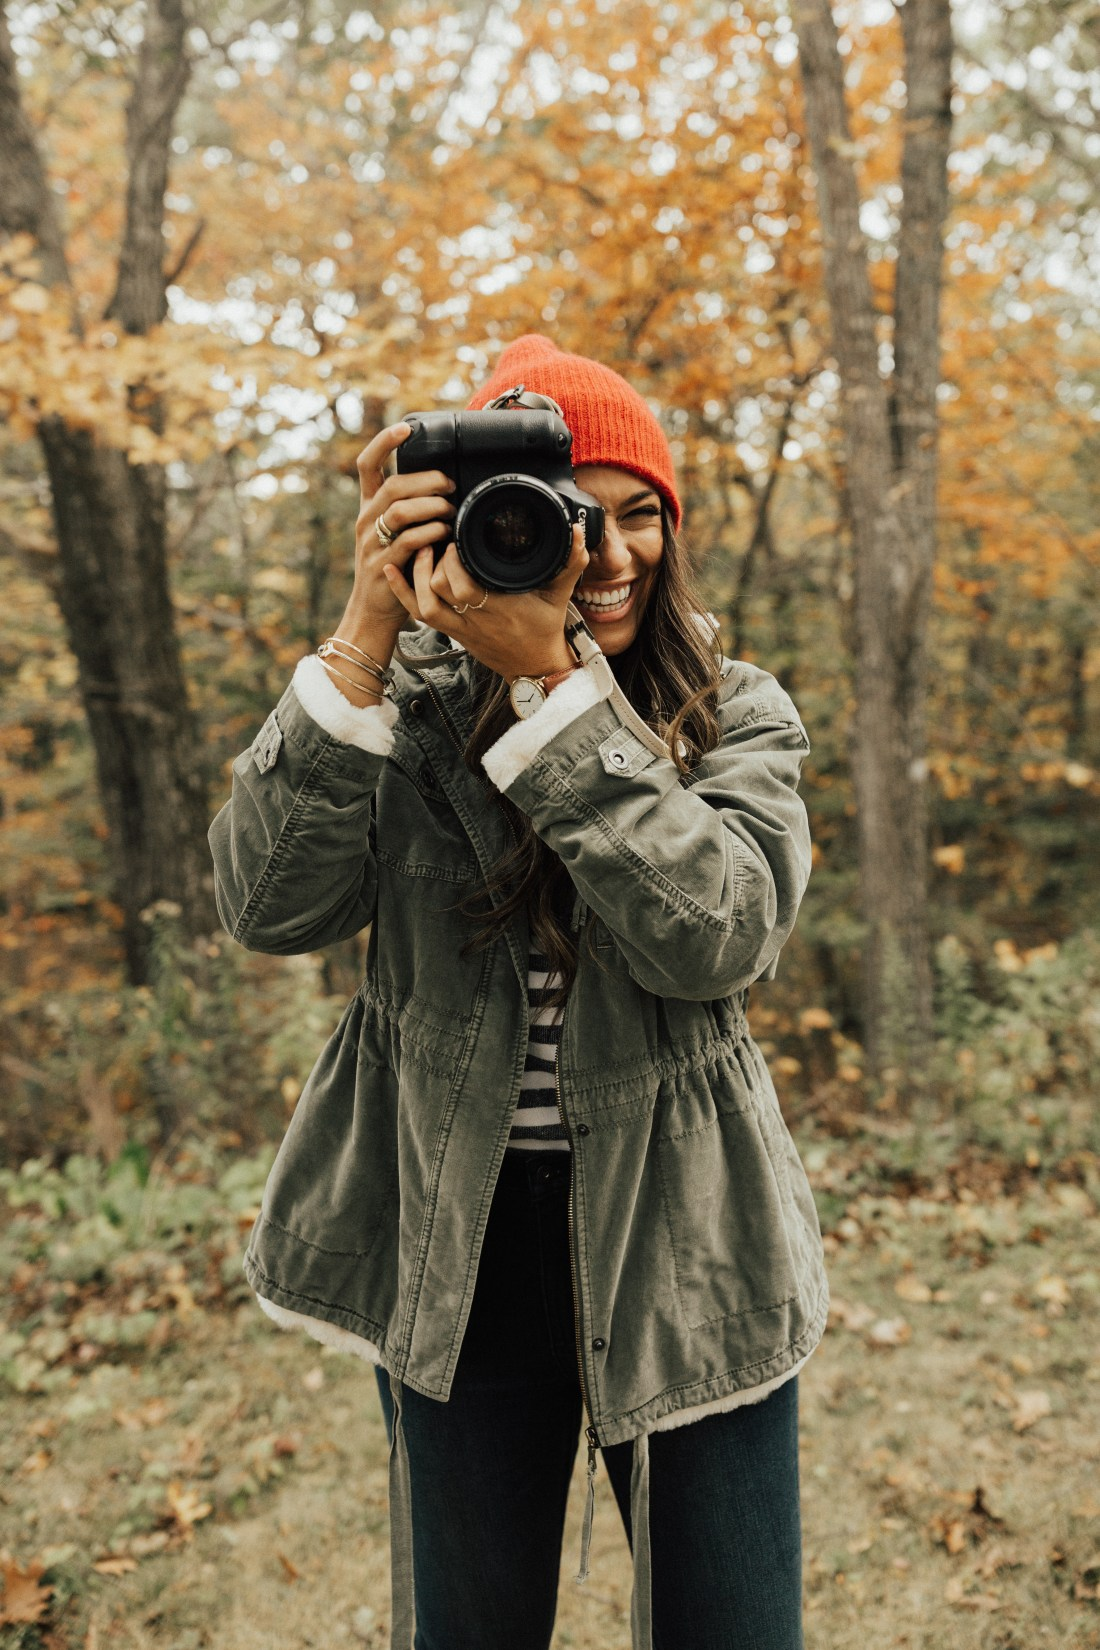 Featured On Anthropologie | Shades of Fall | Fall Fashion feature with Anthropologie | Fall Trends with Travel Blogger + Photographer Elana Jadallah | Best Looks of Fall with Anthropologie | Exploring Camden Maine | Travel Diary Camden Maine via @elanaloo + elanaloo.com